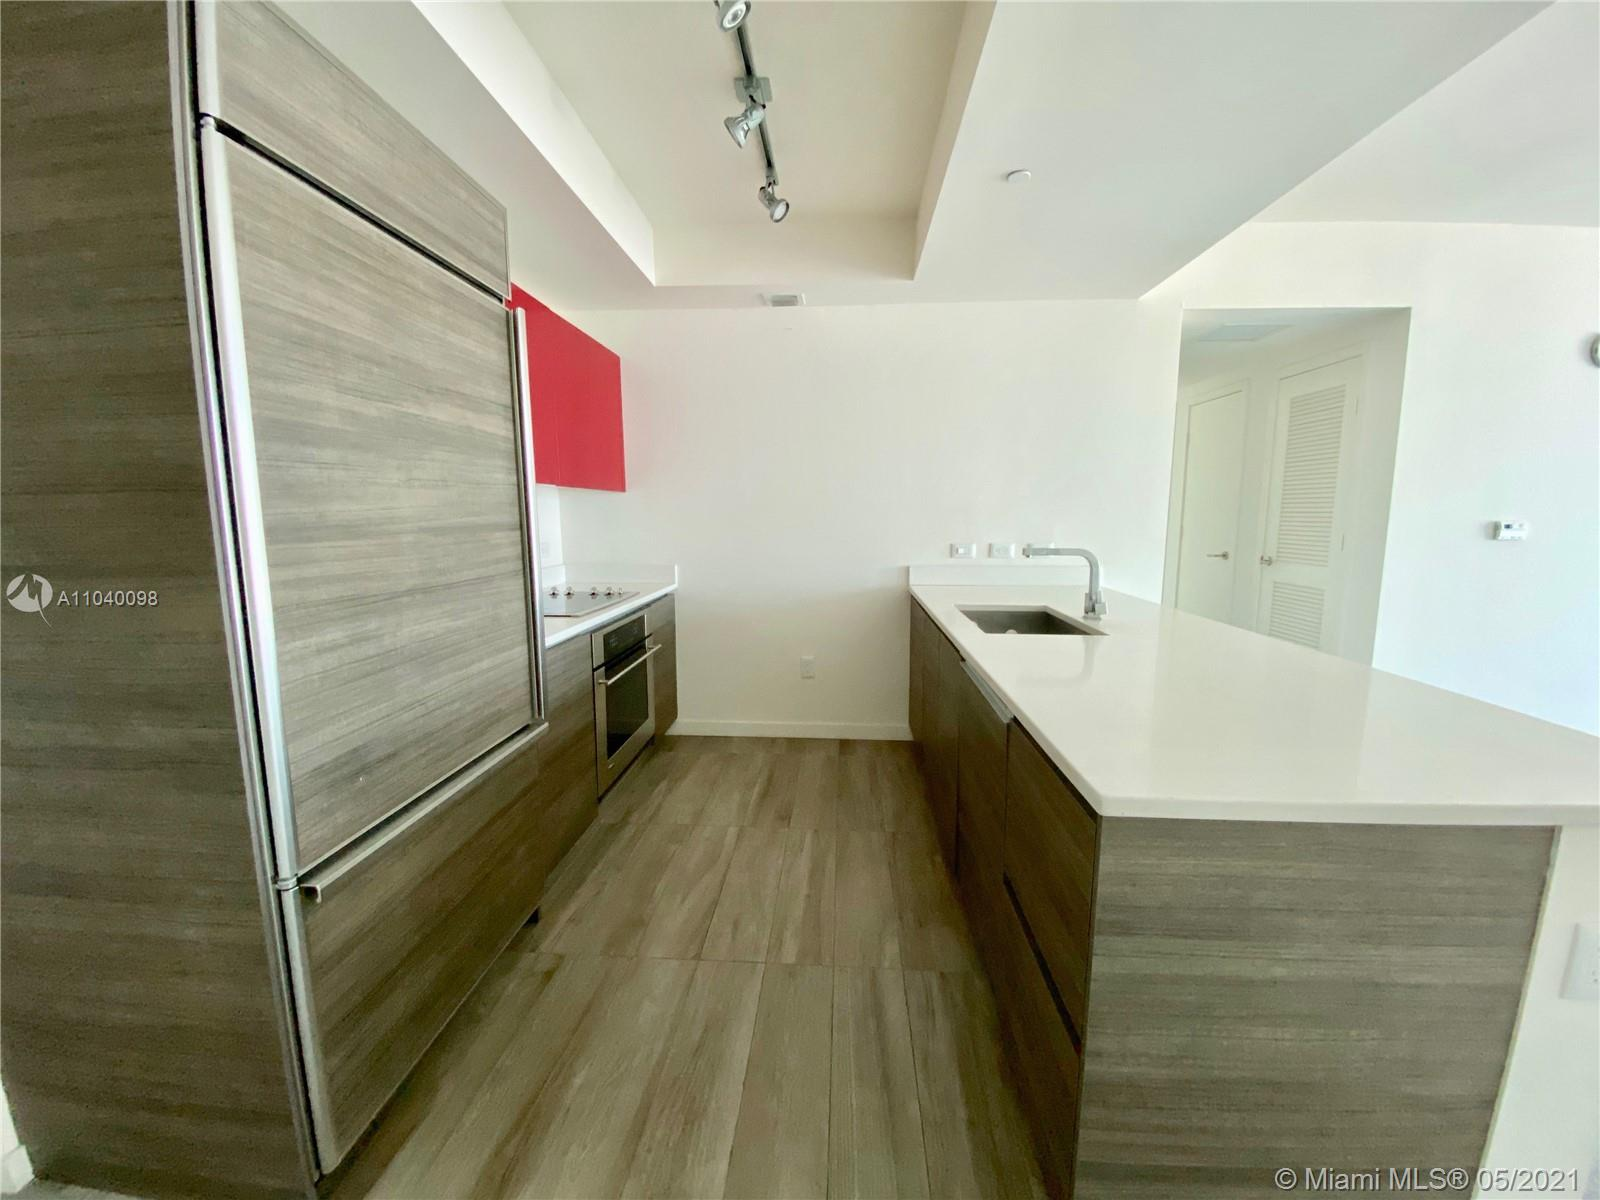 Super bright 2 bed & 2 bath unit at Millecento Brickell. This unit features a spacious floor-plan, floor to ceiling windows, open skyline views with lots of natural light, balcony and Italian cabinetry. Resort Style Amenities include a rooftop pool, larger pool on 9th Floor, Fitness Center, Kids Room, Club Room, theatre and sauna. Washer & dryer inside. Centrally located close to restaurants, shops, supermarkets, Mary Brickell Village, Brickell City Centre, Metrorail & Metromover.